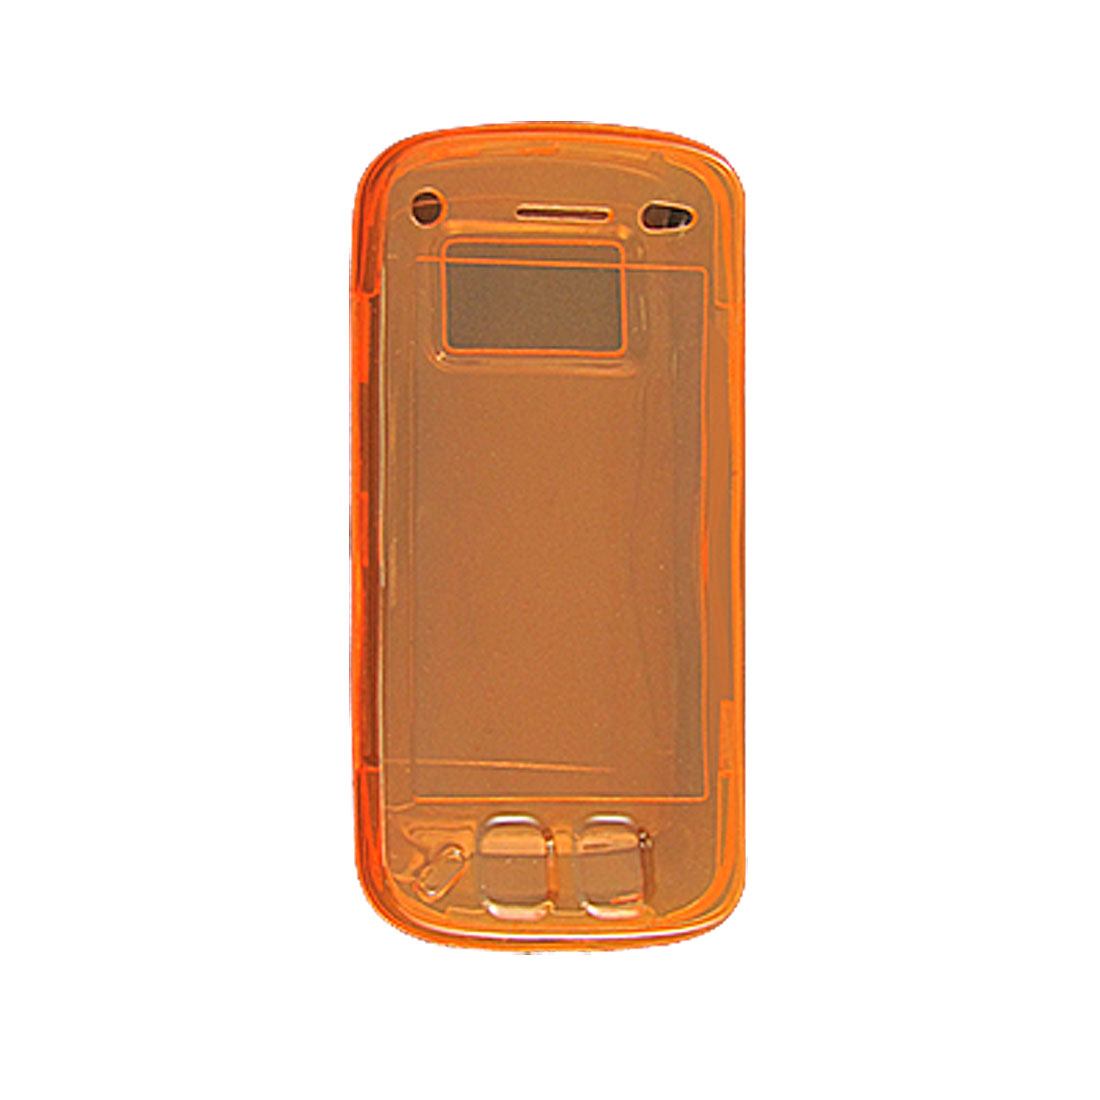 Clear Orange Plastic Soft Cover Protector for Nokia N97